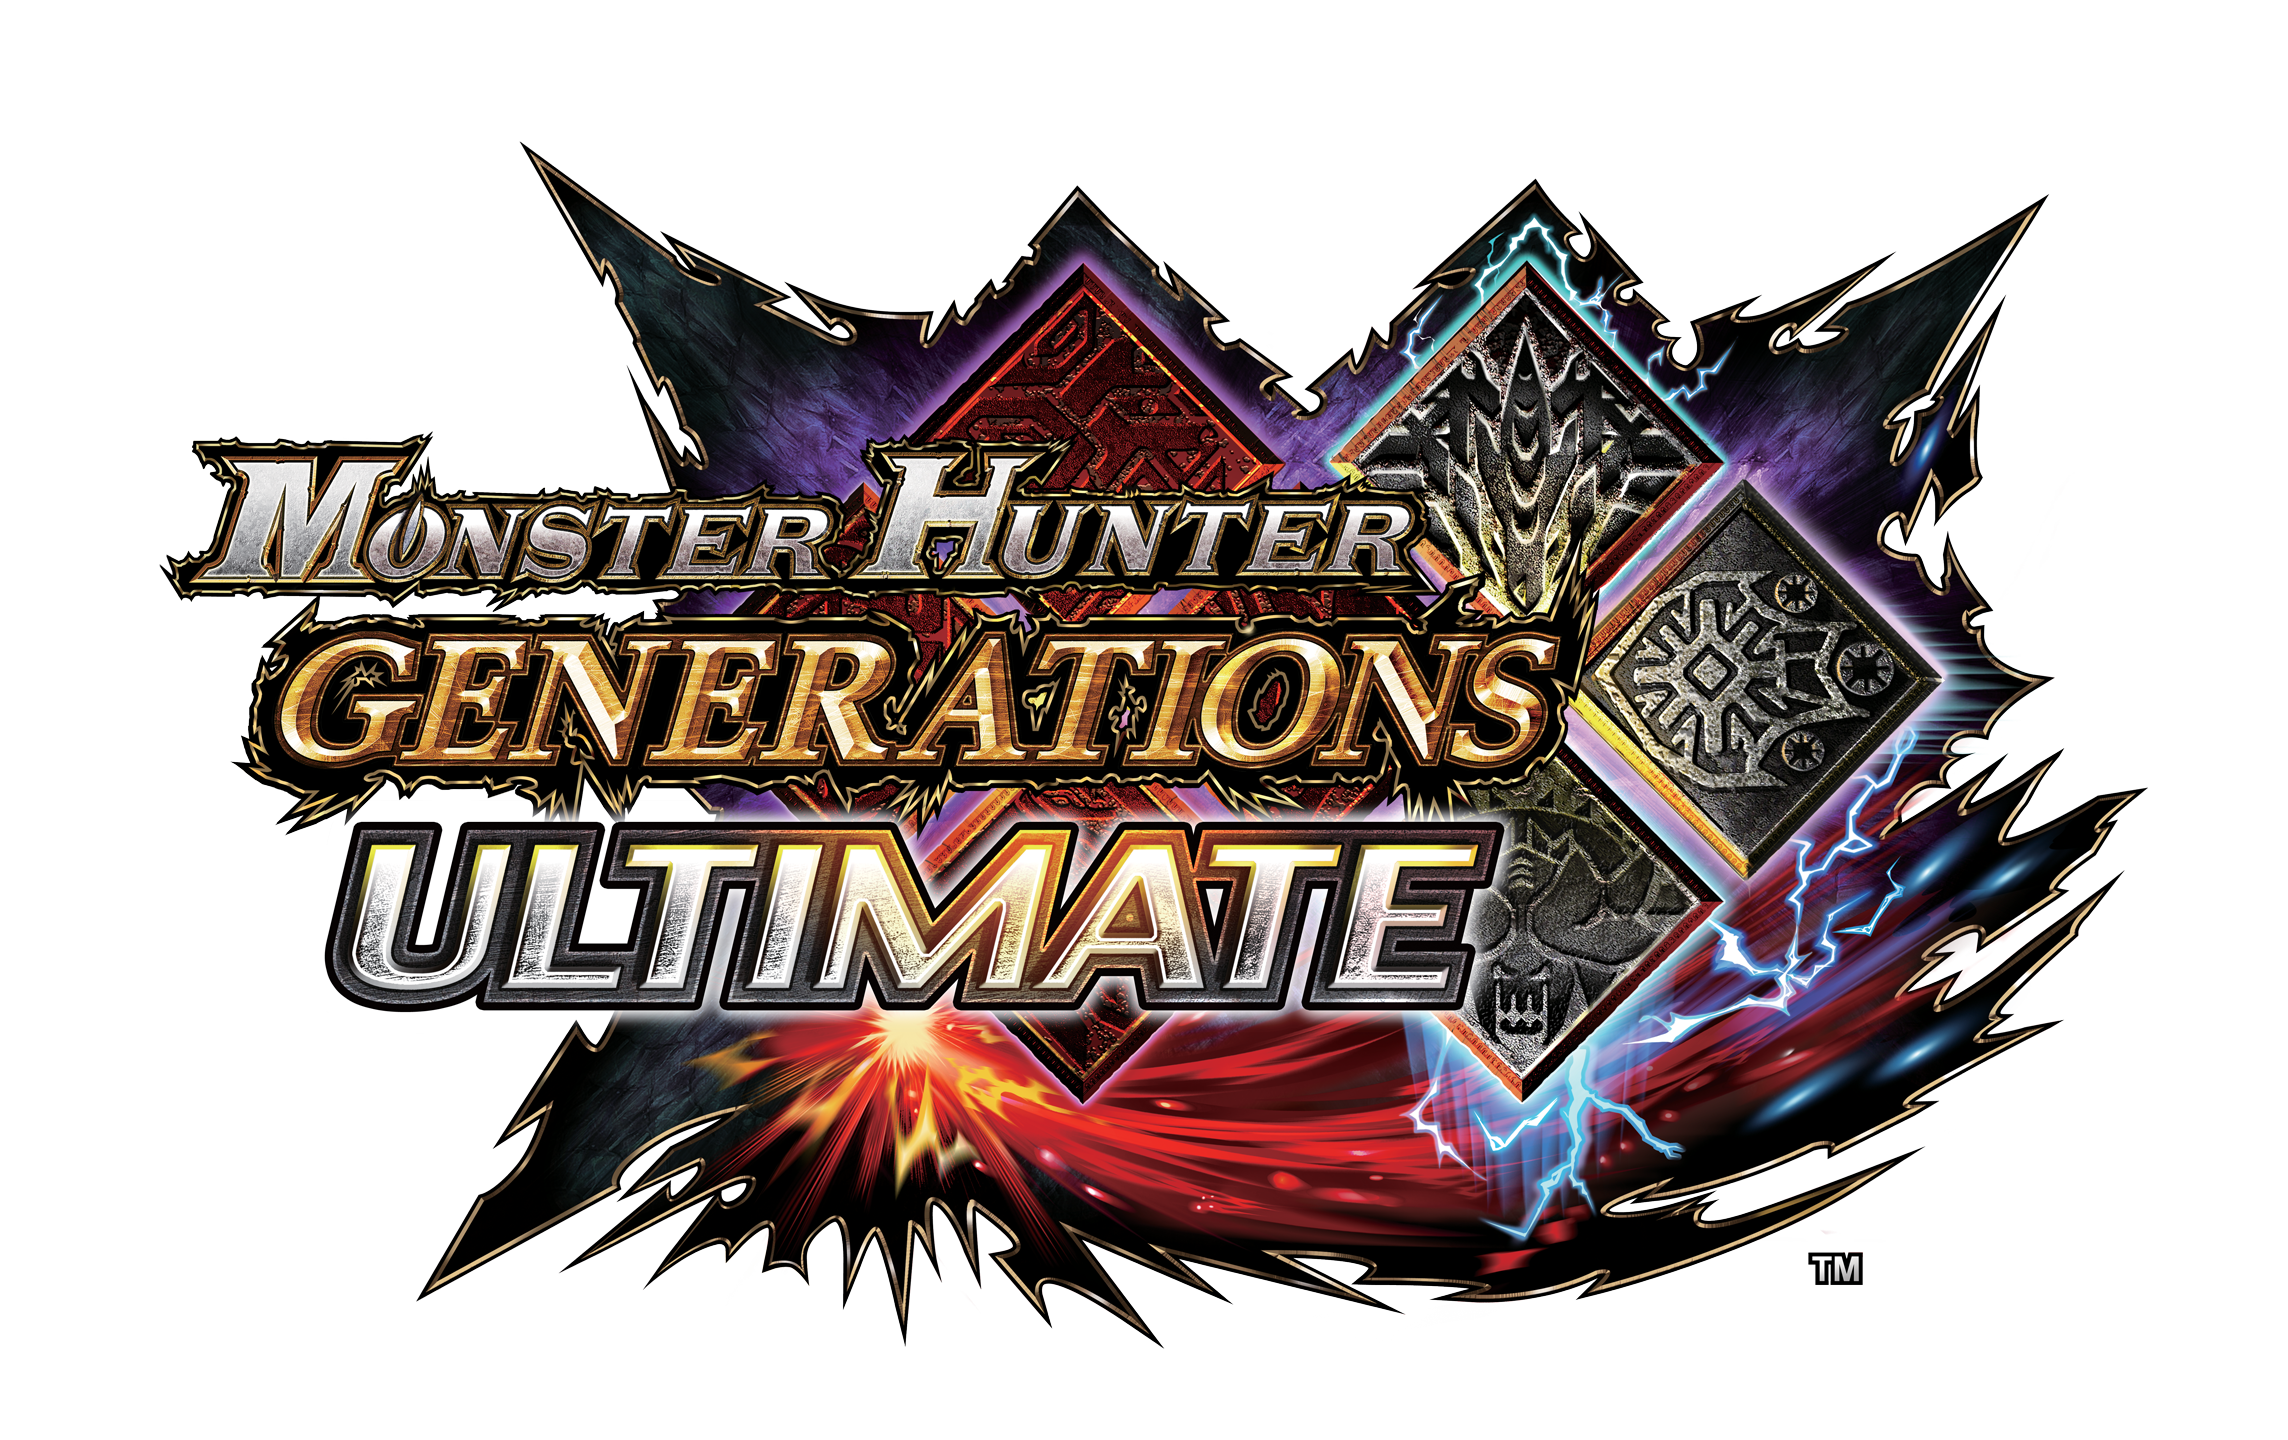 Monster hunter logo png. Generations ultimate arrives this